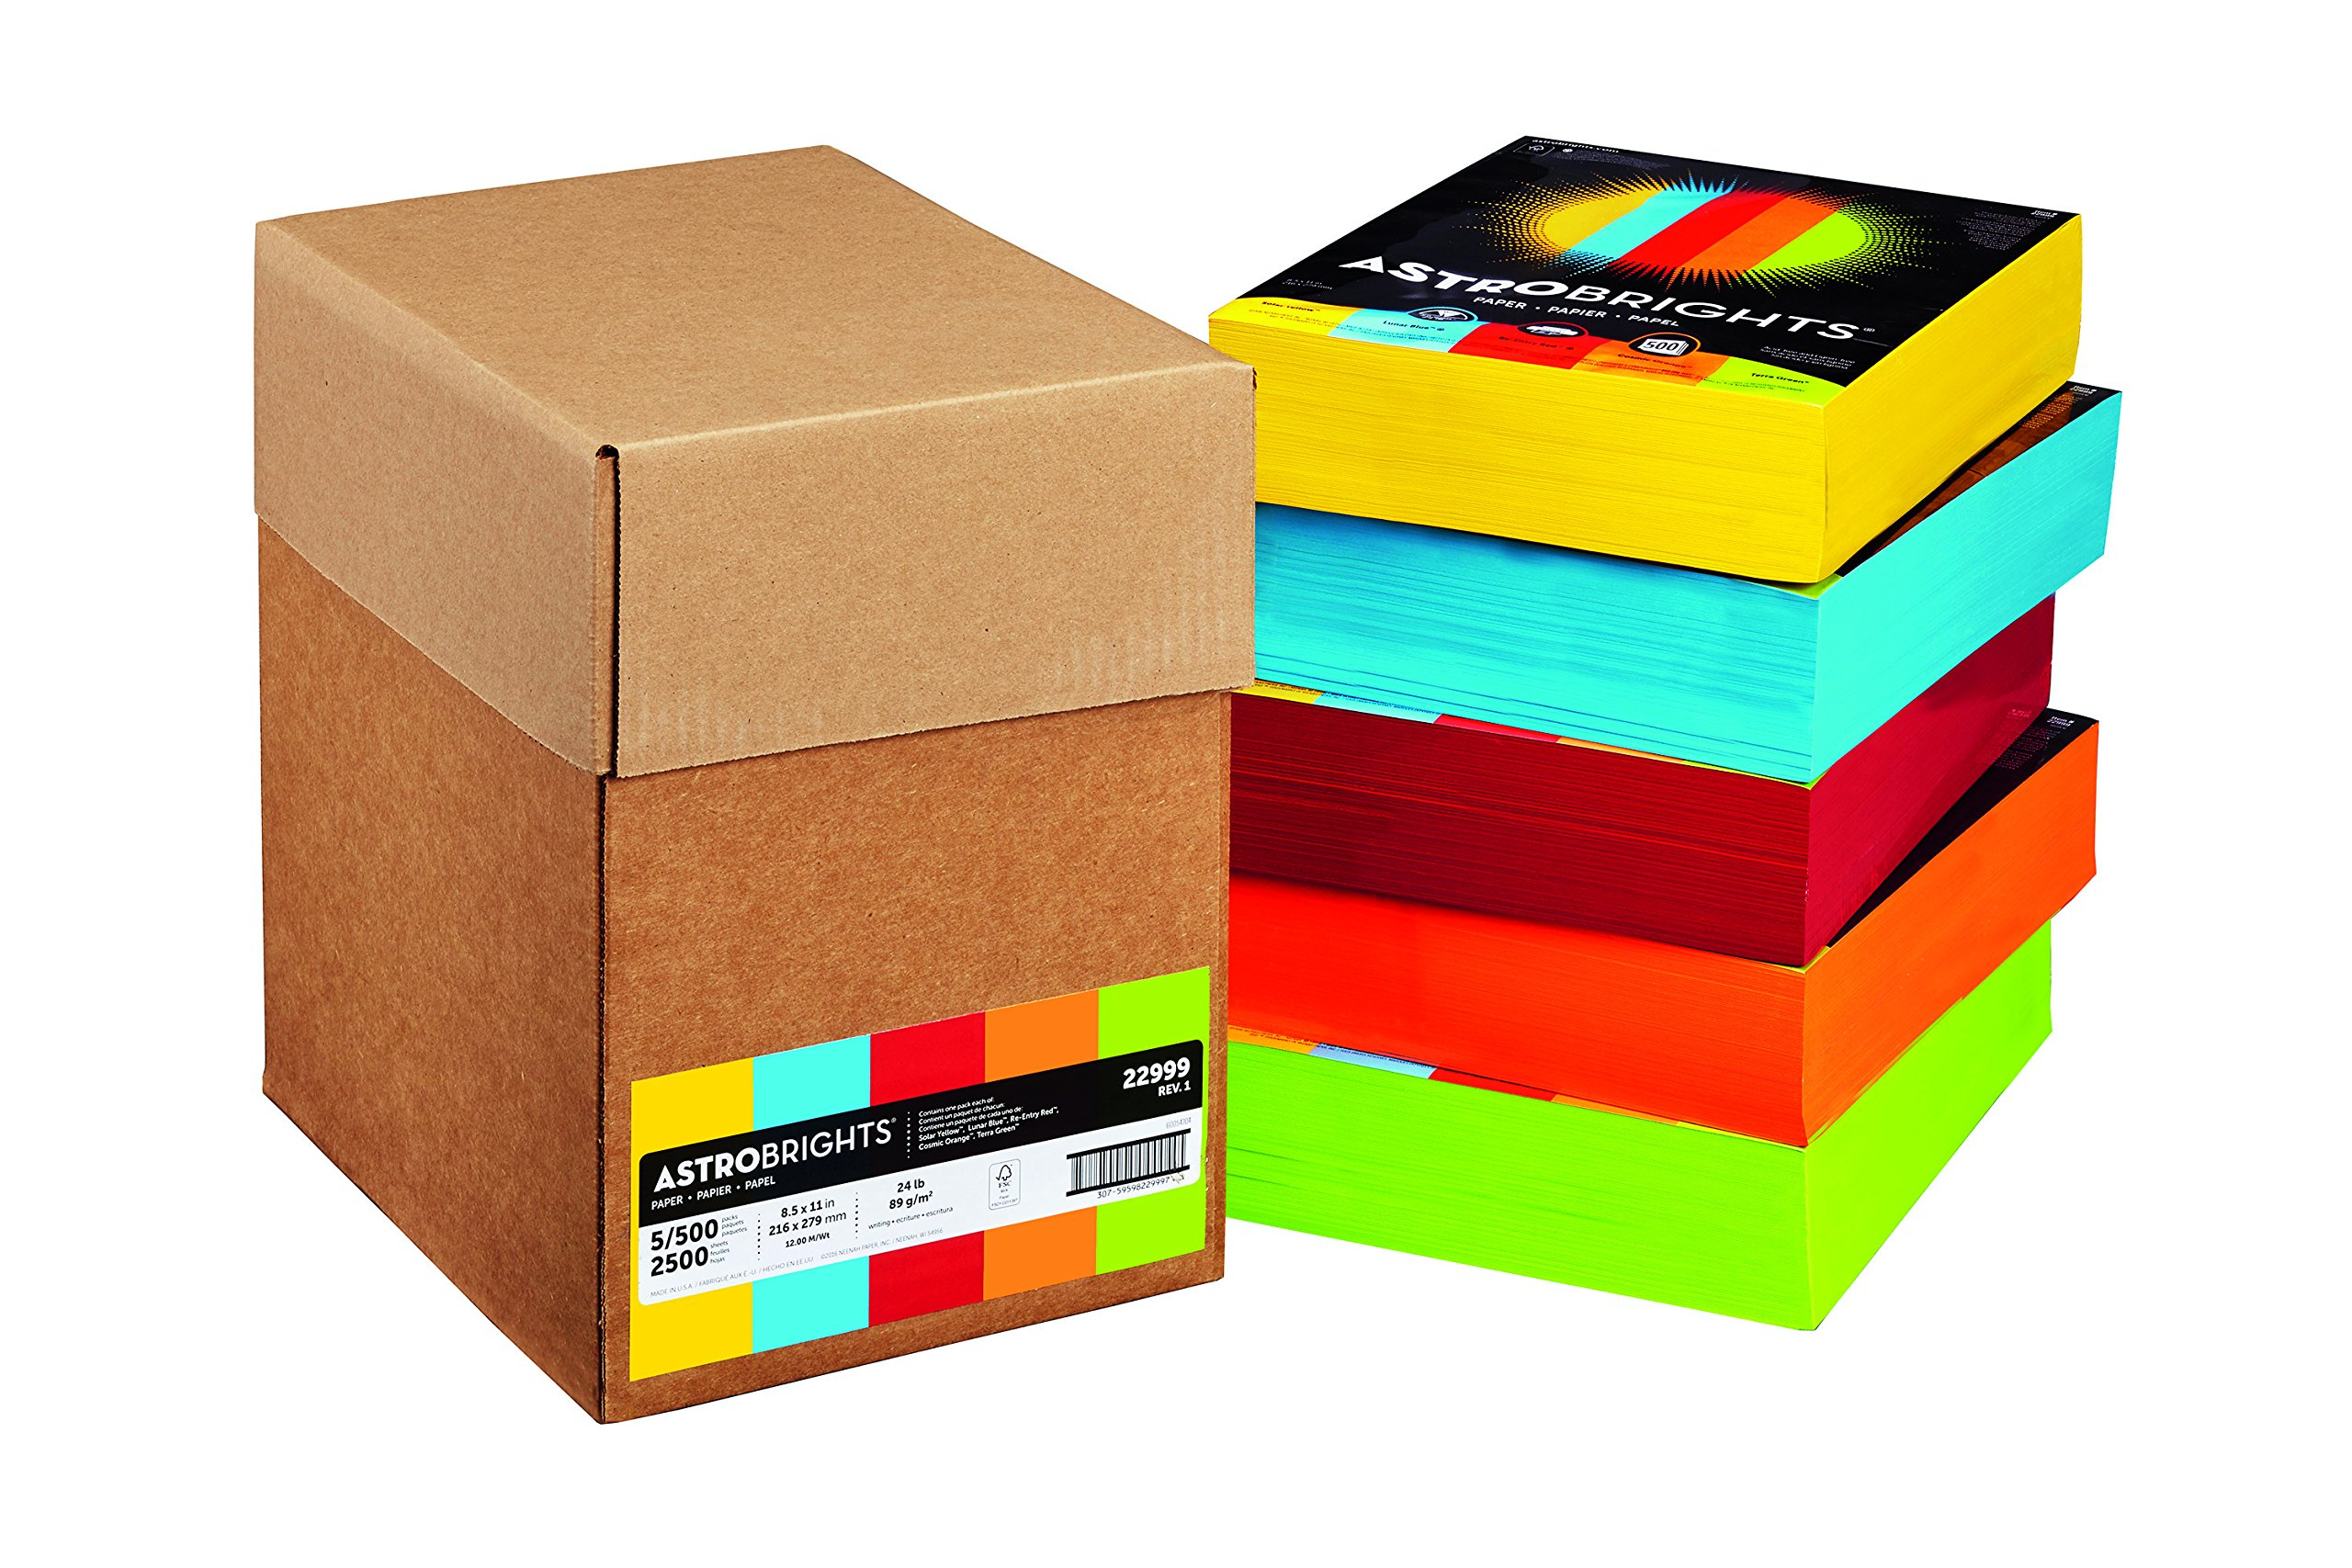 Astrobrights Color Paper, 8.5''x 11'', 24 lb/89 gsm, 5-Color Mixed Carton, 2500 sheets (22999) by Astrobrights